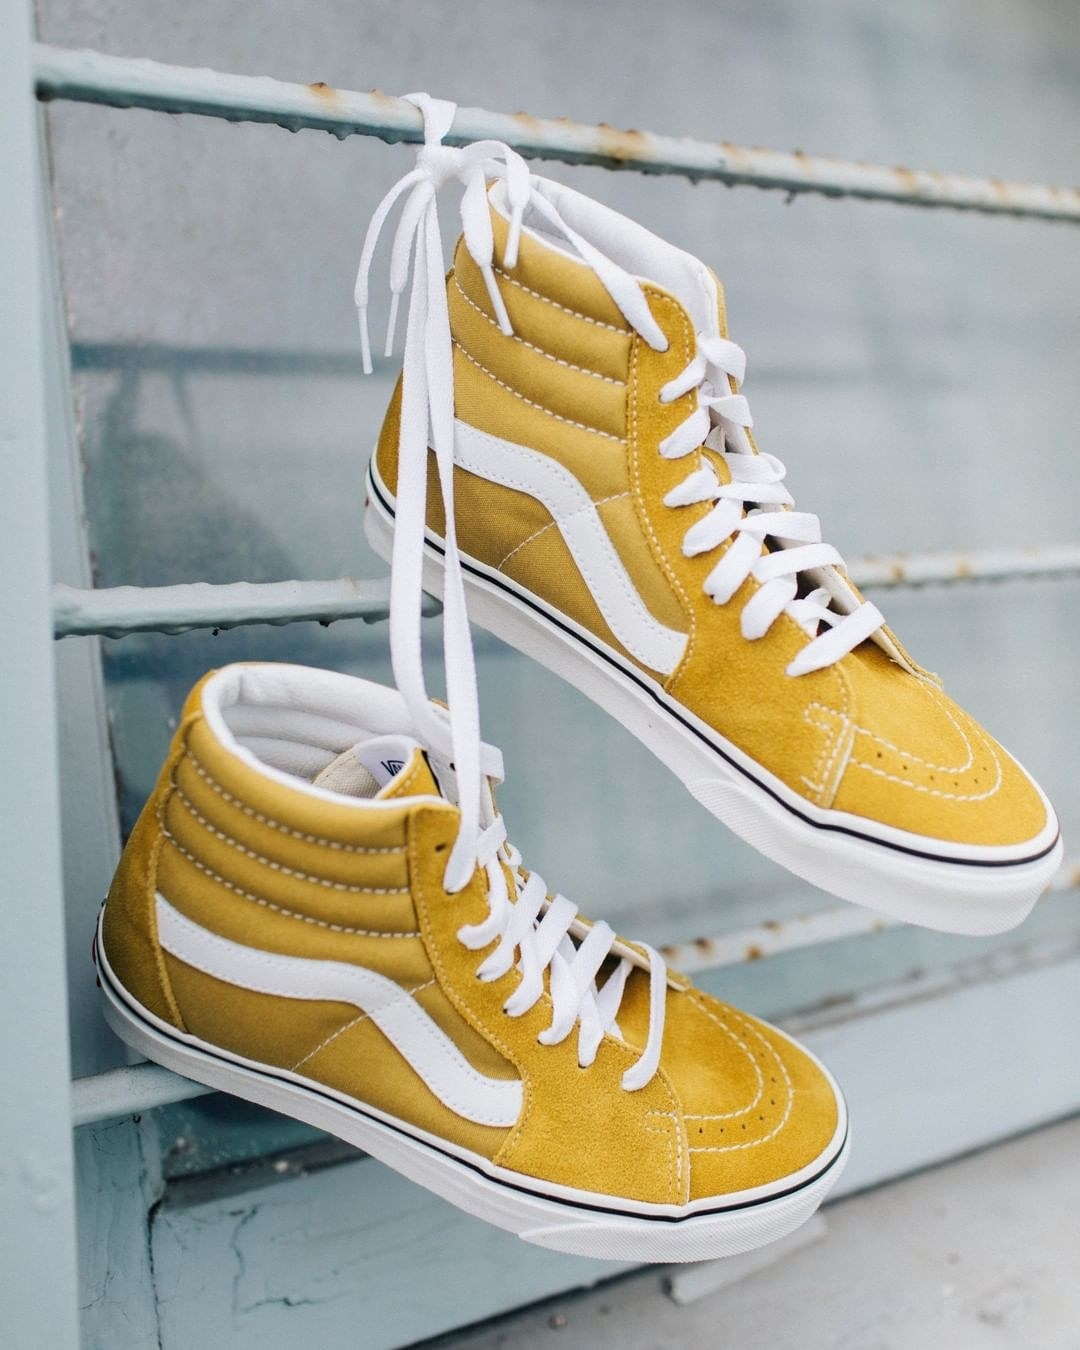 Product photo showing Vans SK8-Hi in olive oil/white